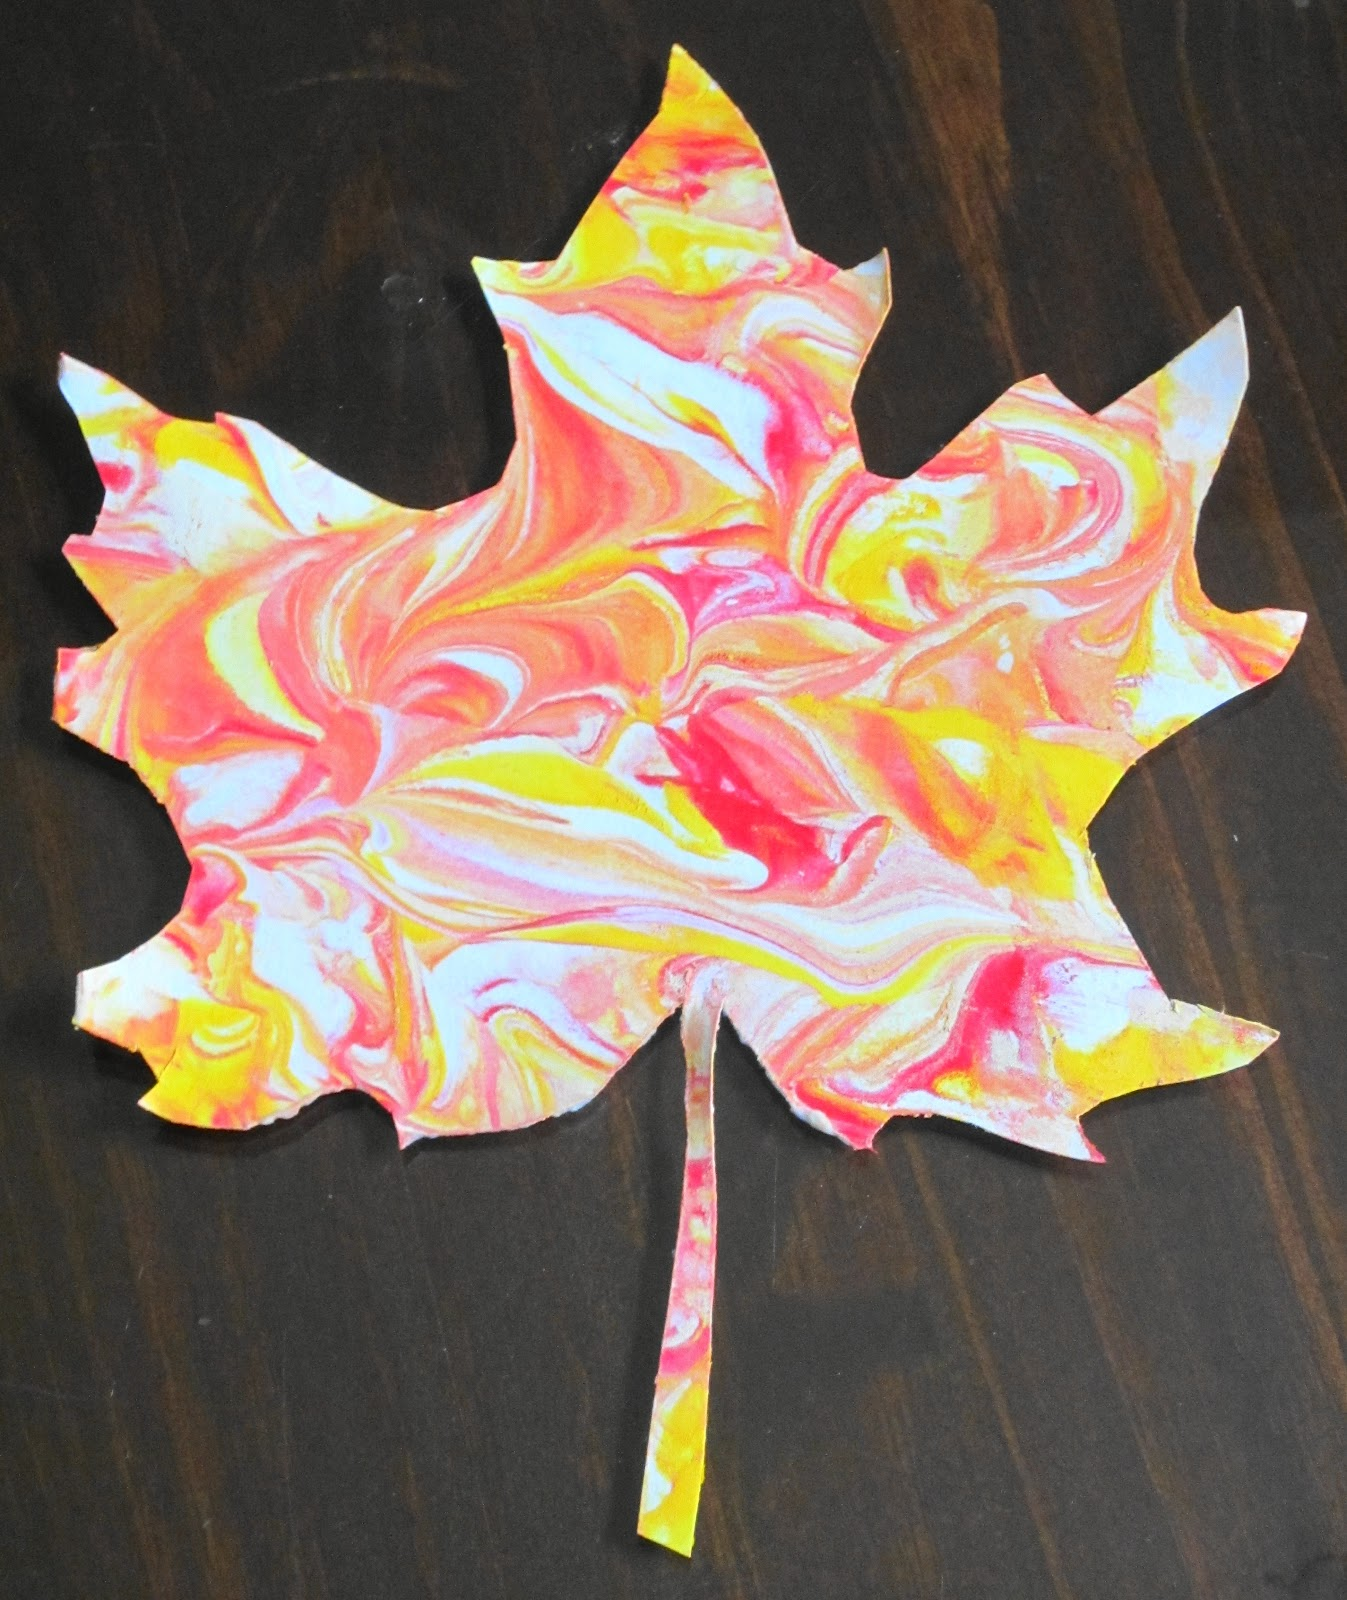 Art Ideas With Leaves: Teaching With TLC: Create Marbled Fall Leaves With Shaving